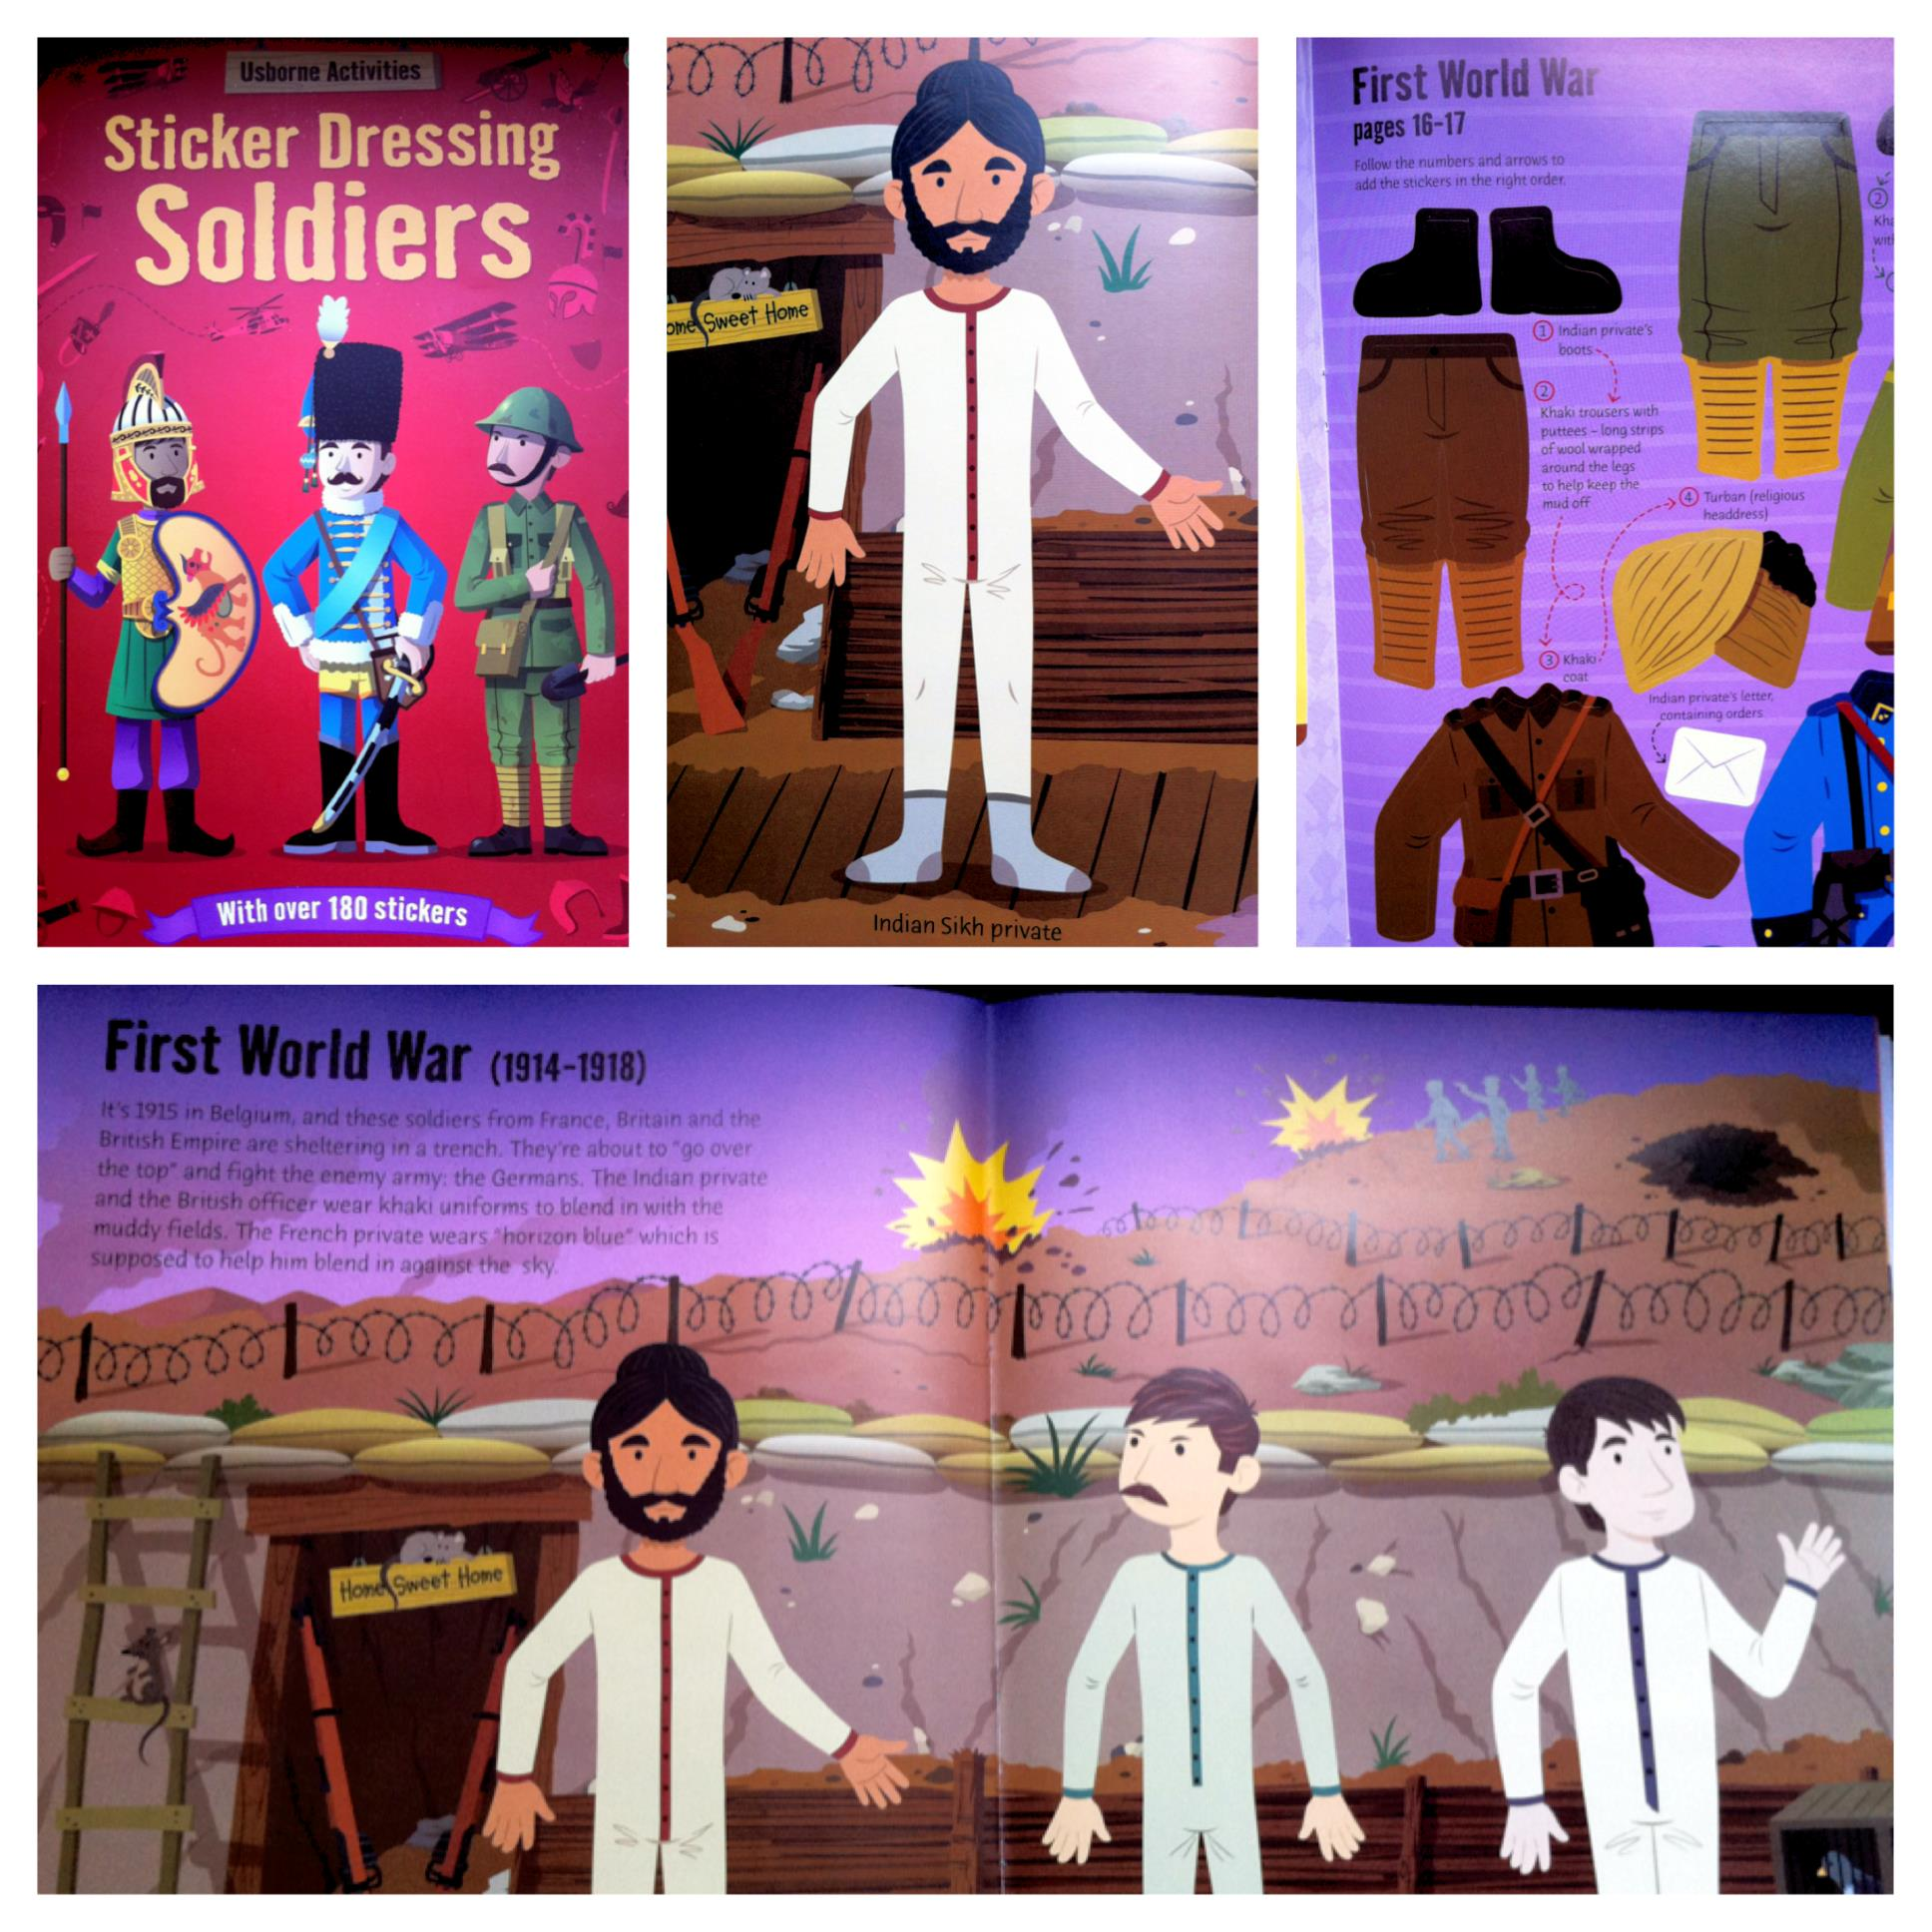 Sikhs in Soldiers sticker book by Usborne